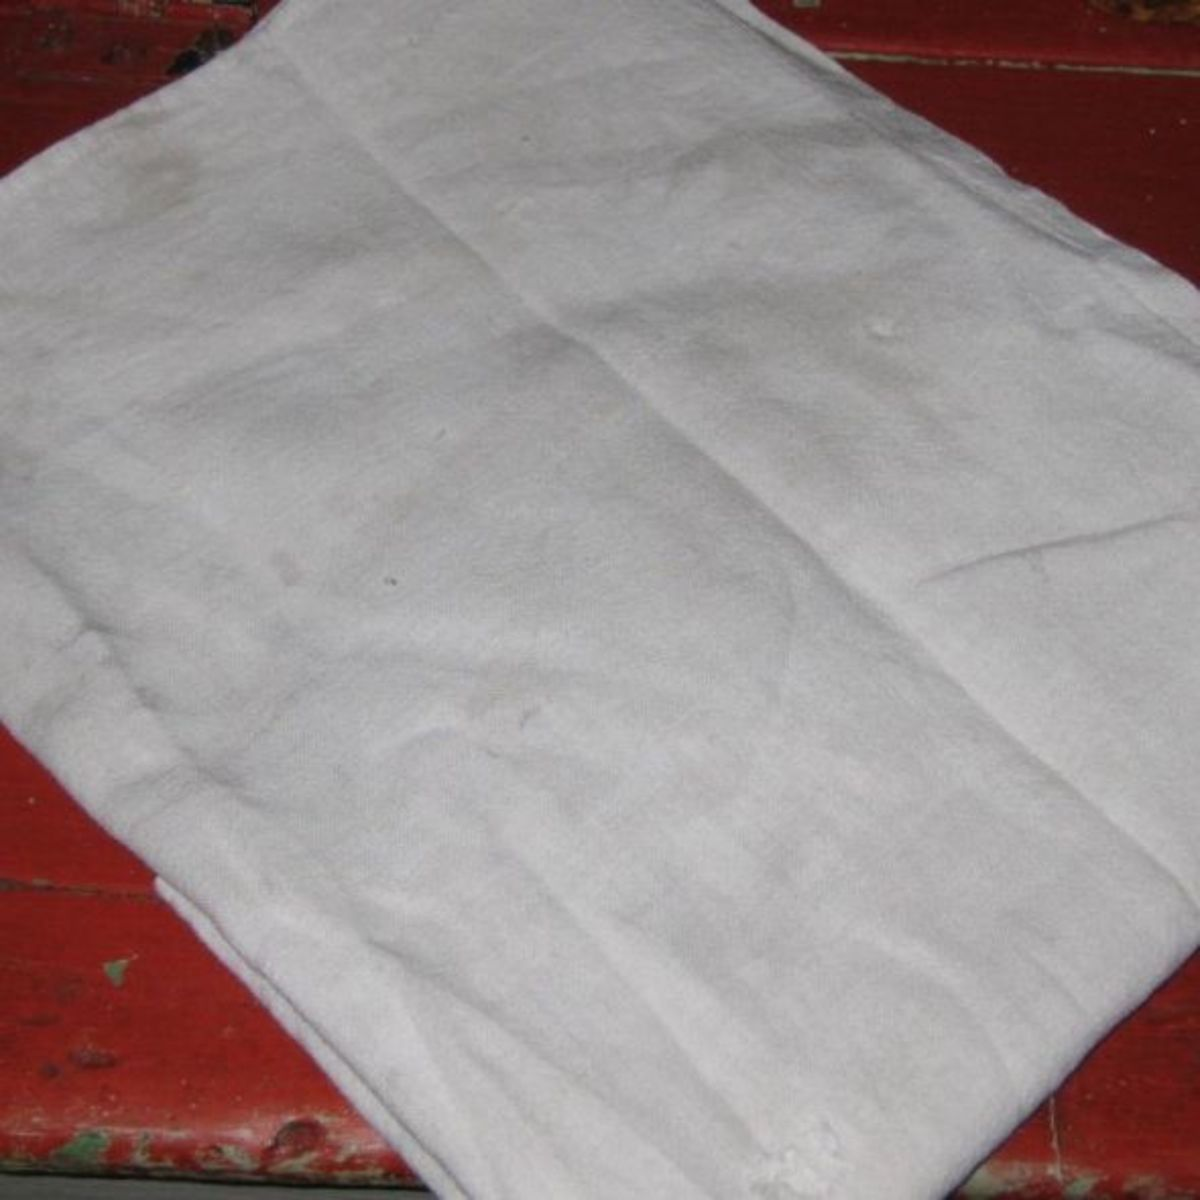 White cotton fabric with small holes.